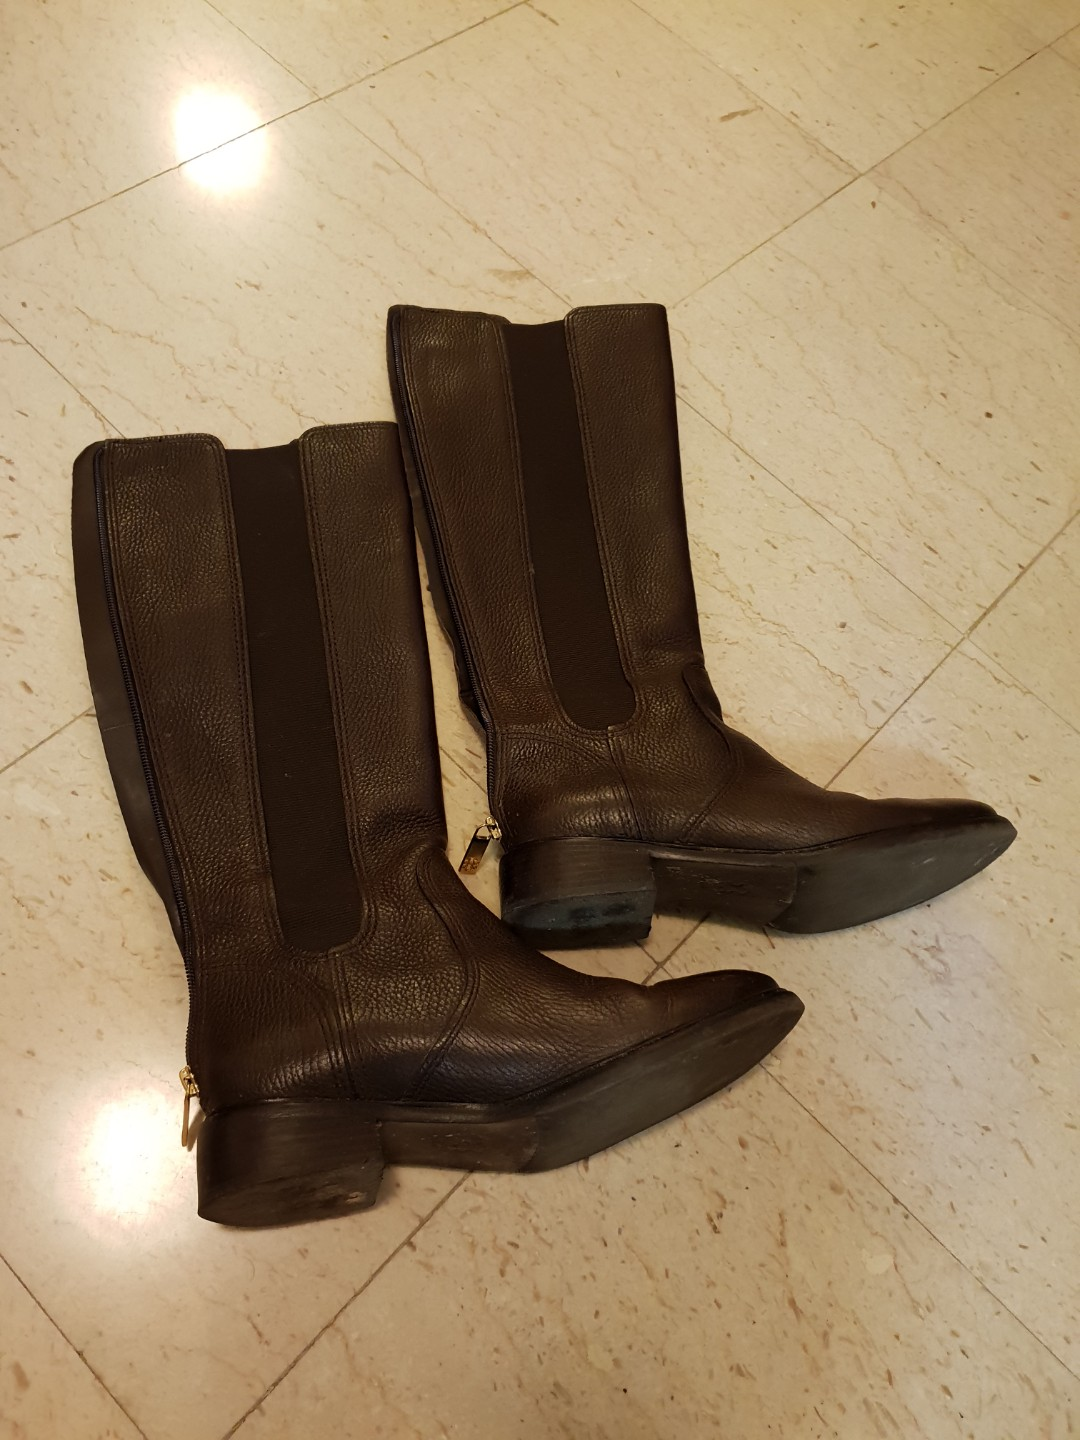 1f51b7ccffd Tory Burch brown leather winter boots